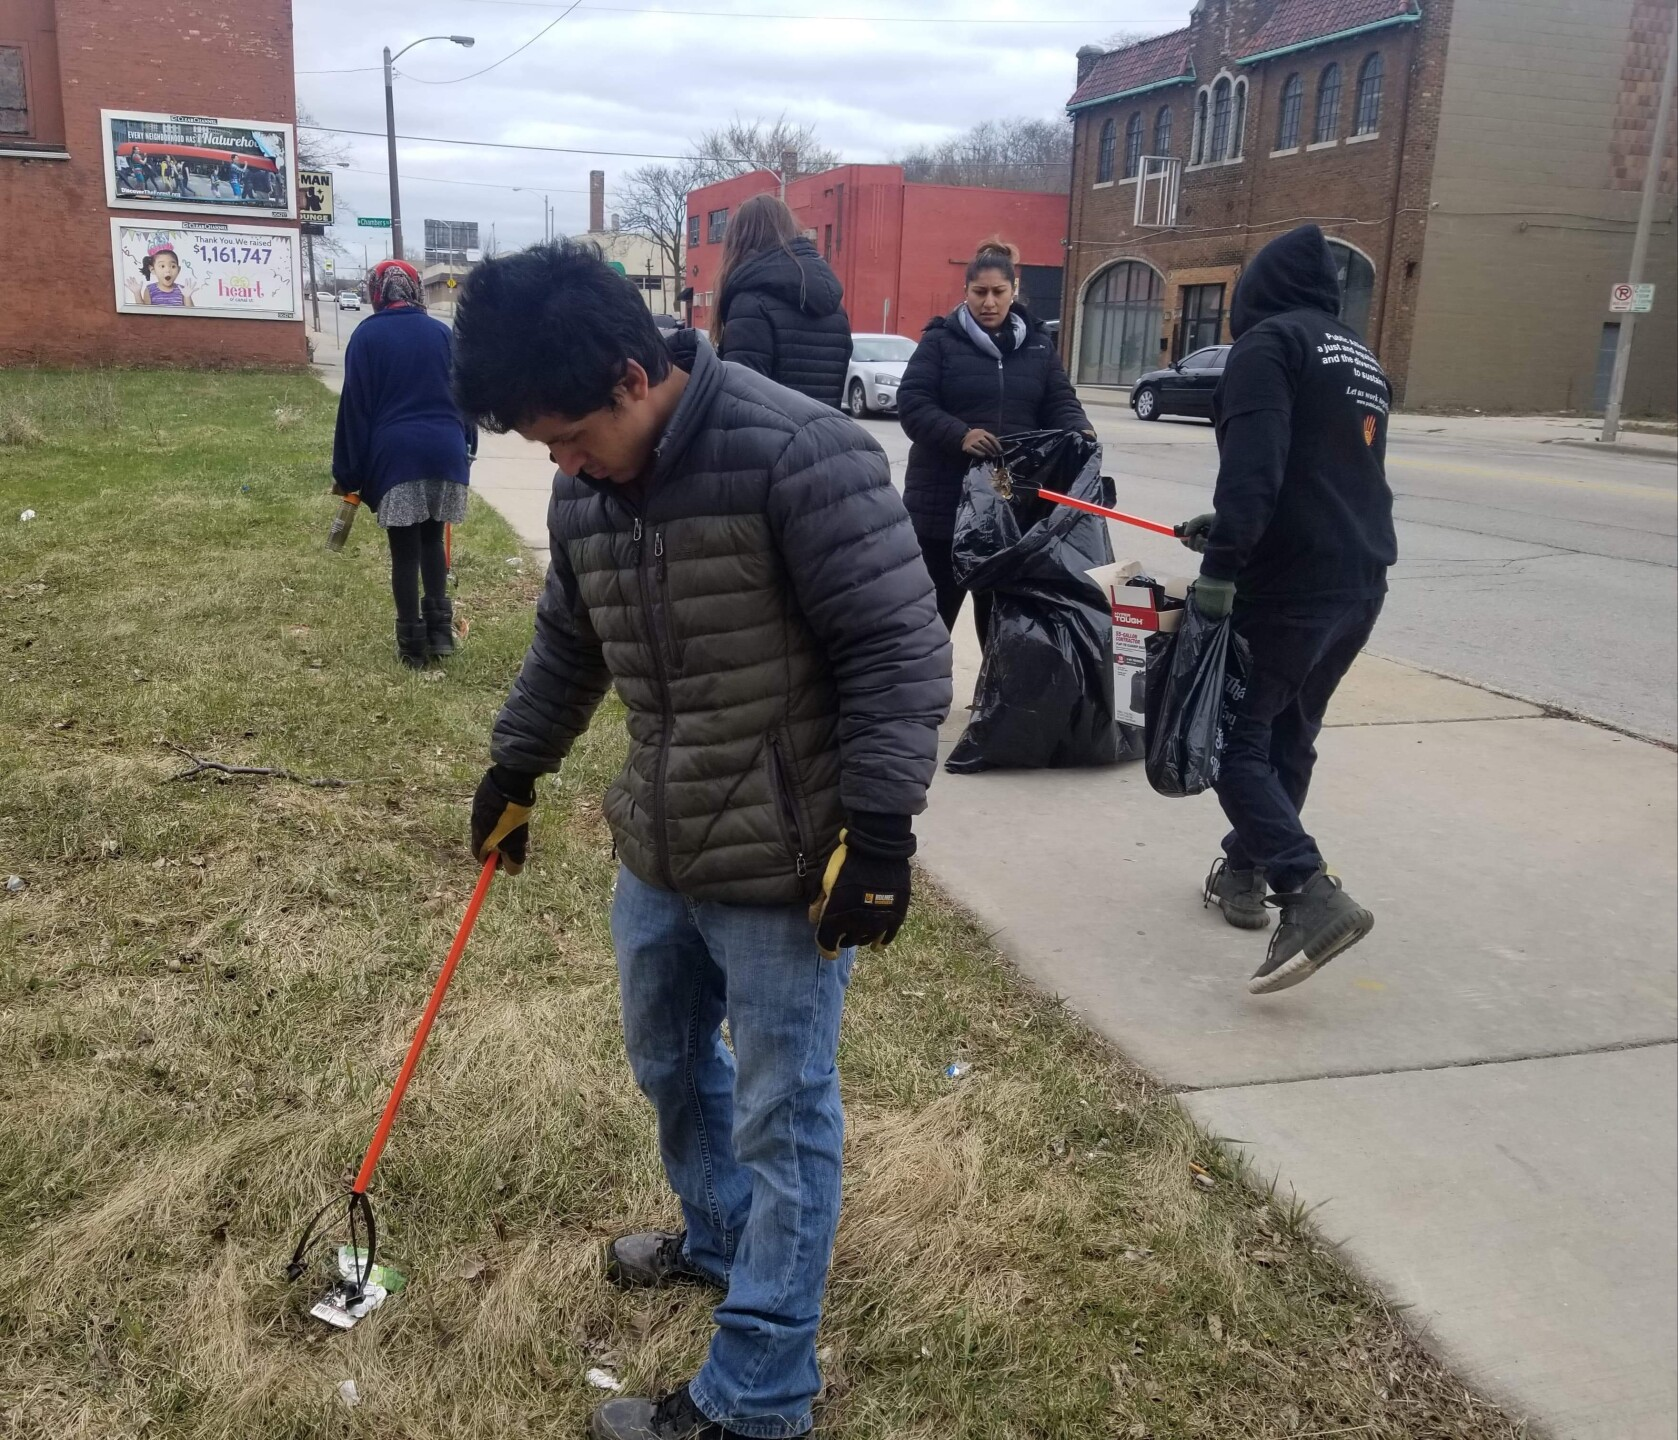 Local youth organizations, True Skool Youth, Ground Works Milwaukee, Cream City Conservations and Public Allies MKE met on Saturday morning on 5th and Locust for Global Youth Service Day, an international effort to participate in community service efforts.